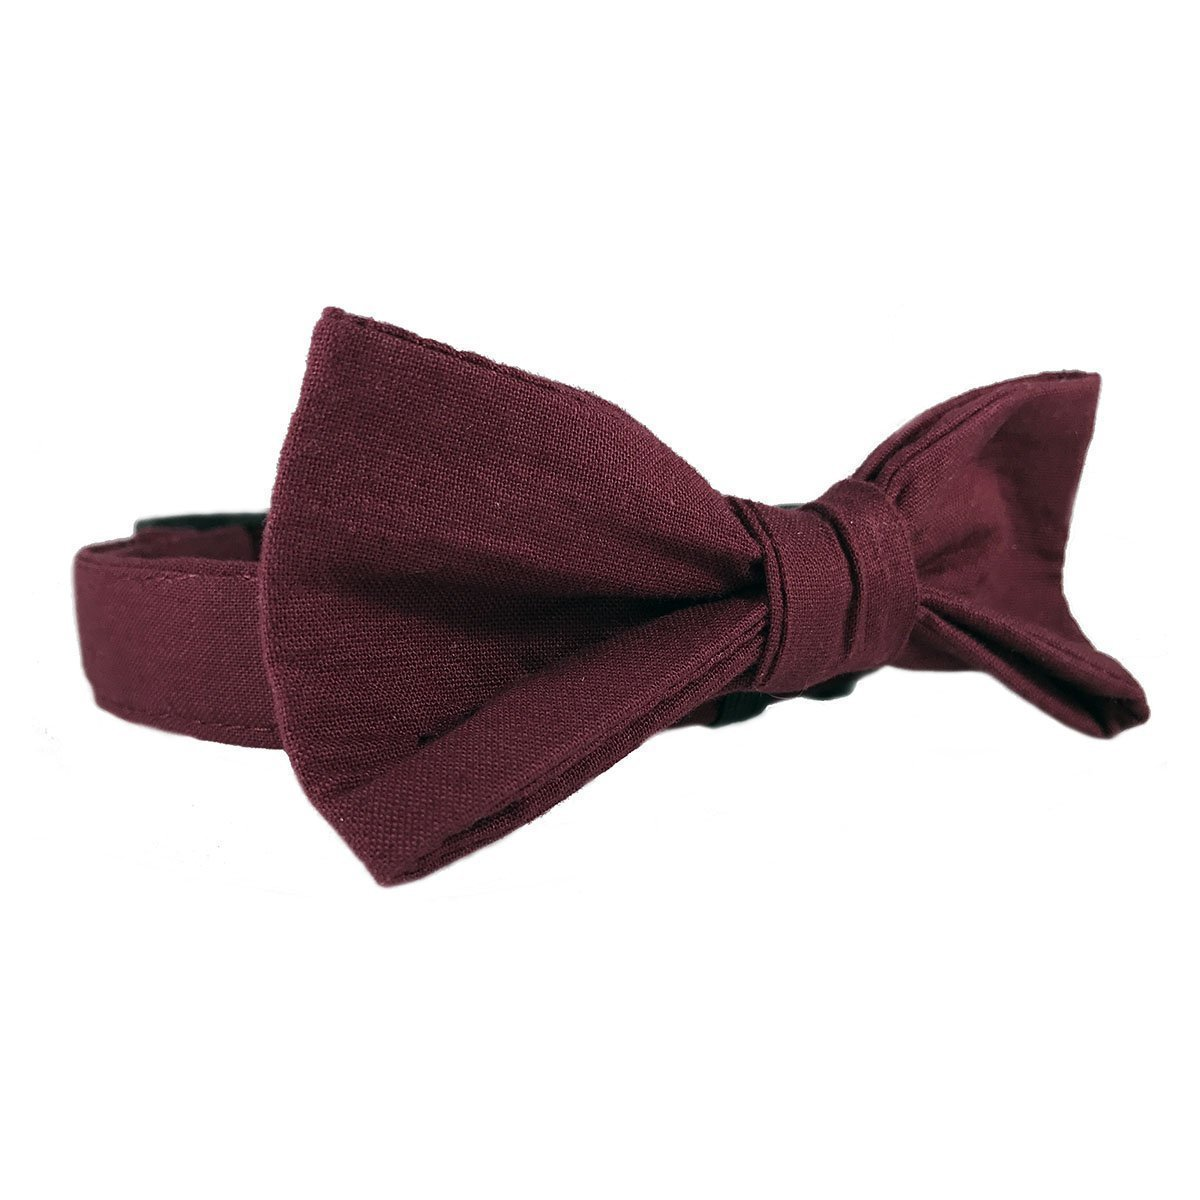 Oh My Paw'd Maroon Cat or Dog Wedding Attire Collar Size Medium 3/4'' Wide and 13-17'' Long with Bow Tie by